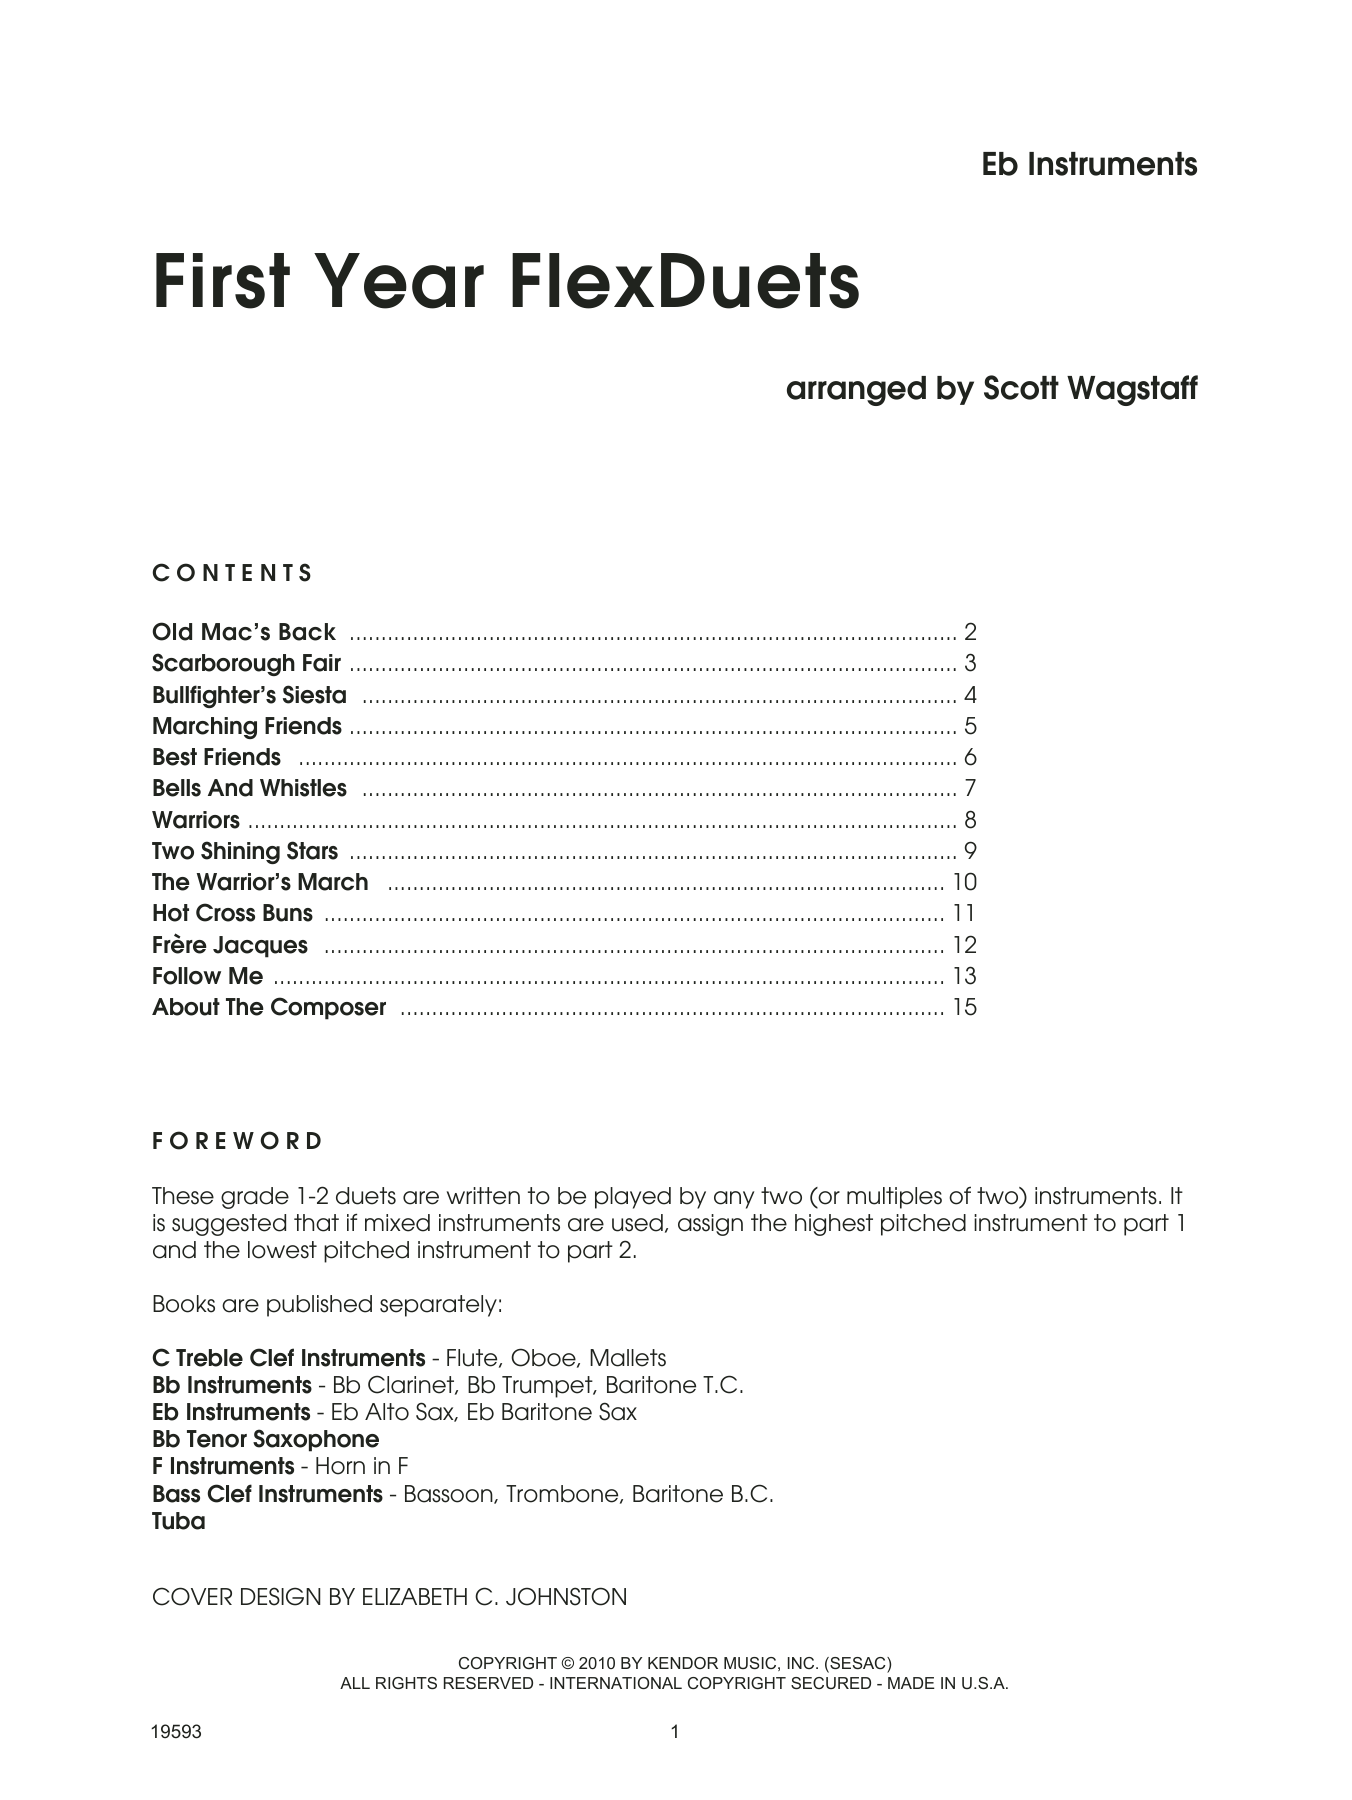 Scott Wagstaff First Year FLexDuets - Eb Instruments sheet music notes and chords